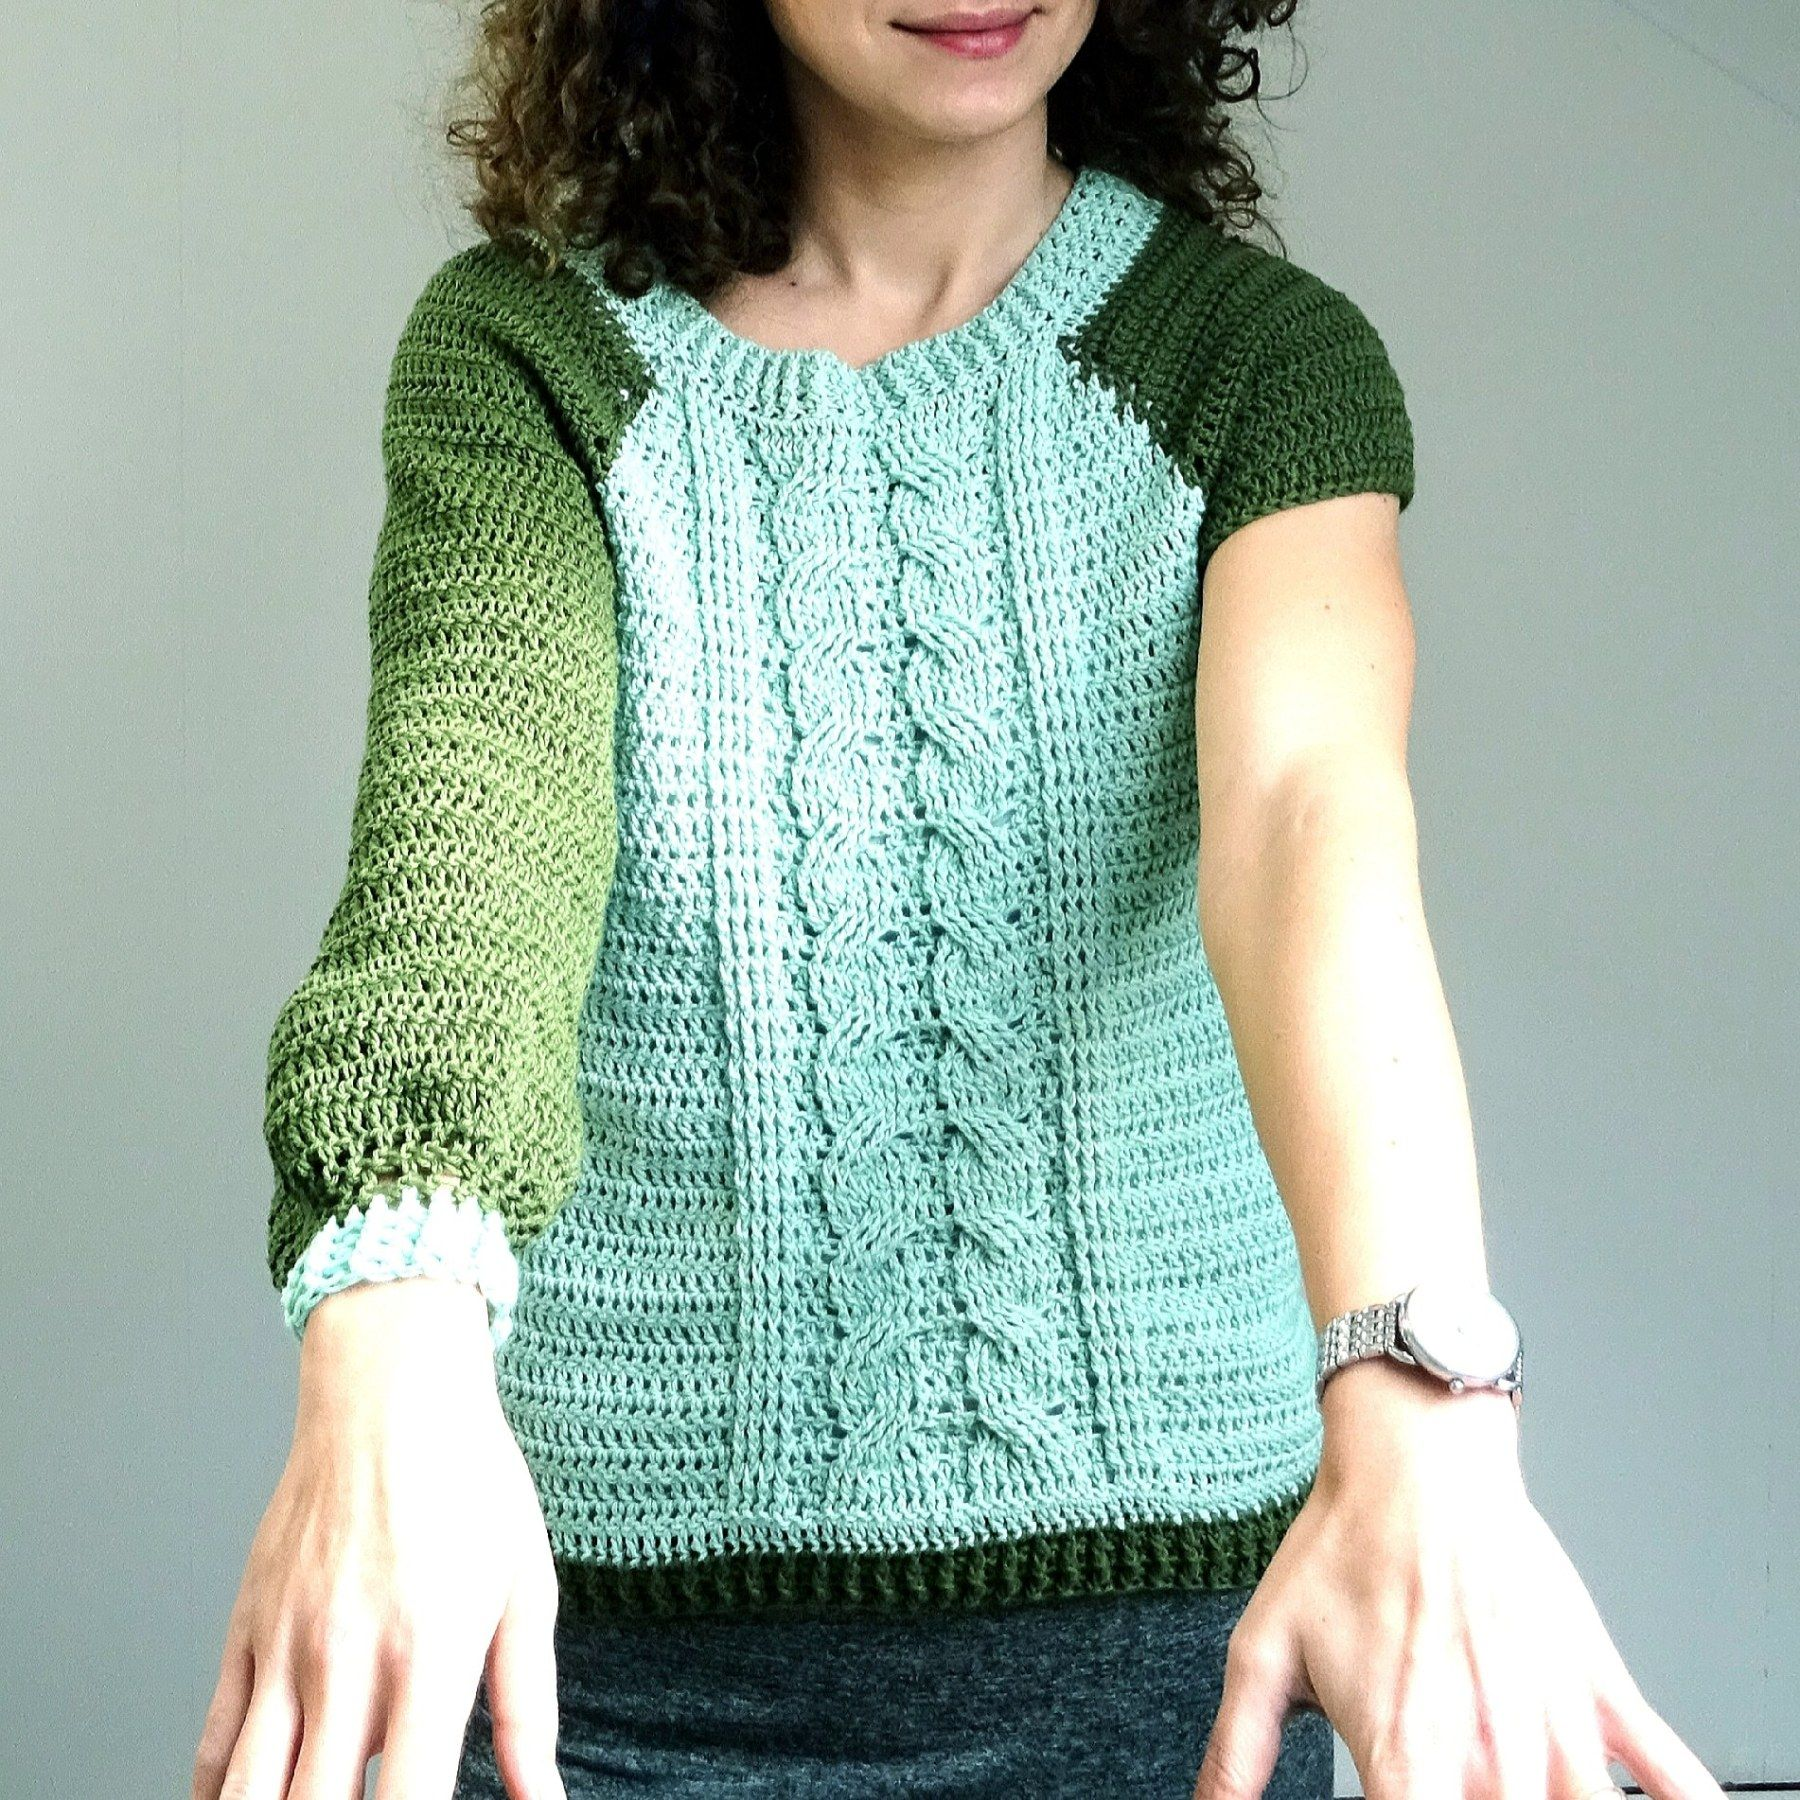 Spring Time Cable Sweater Crochet Tops Free Patterns Crochet Top Outfit Crochet Top Pattern